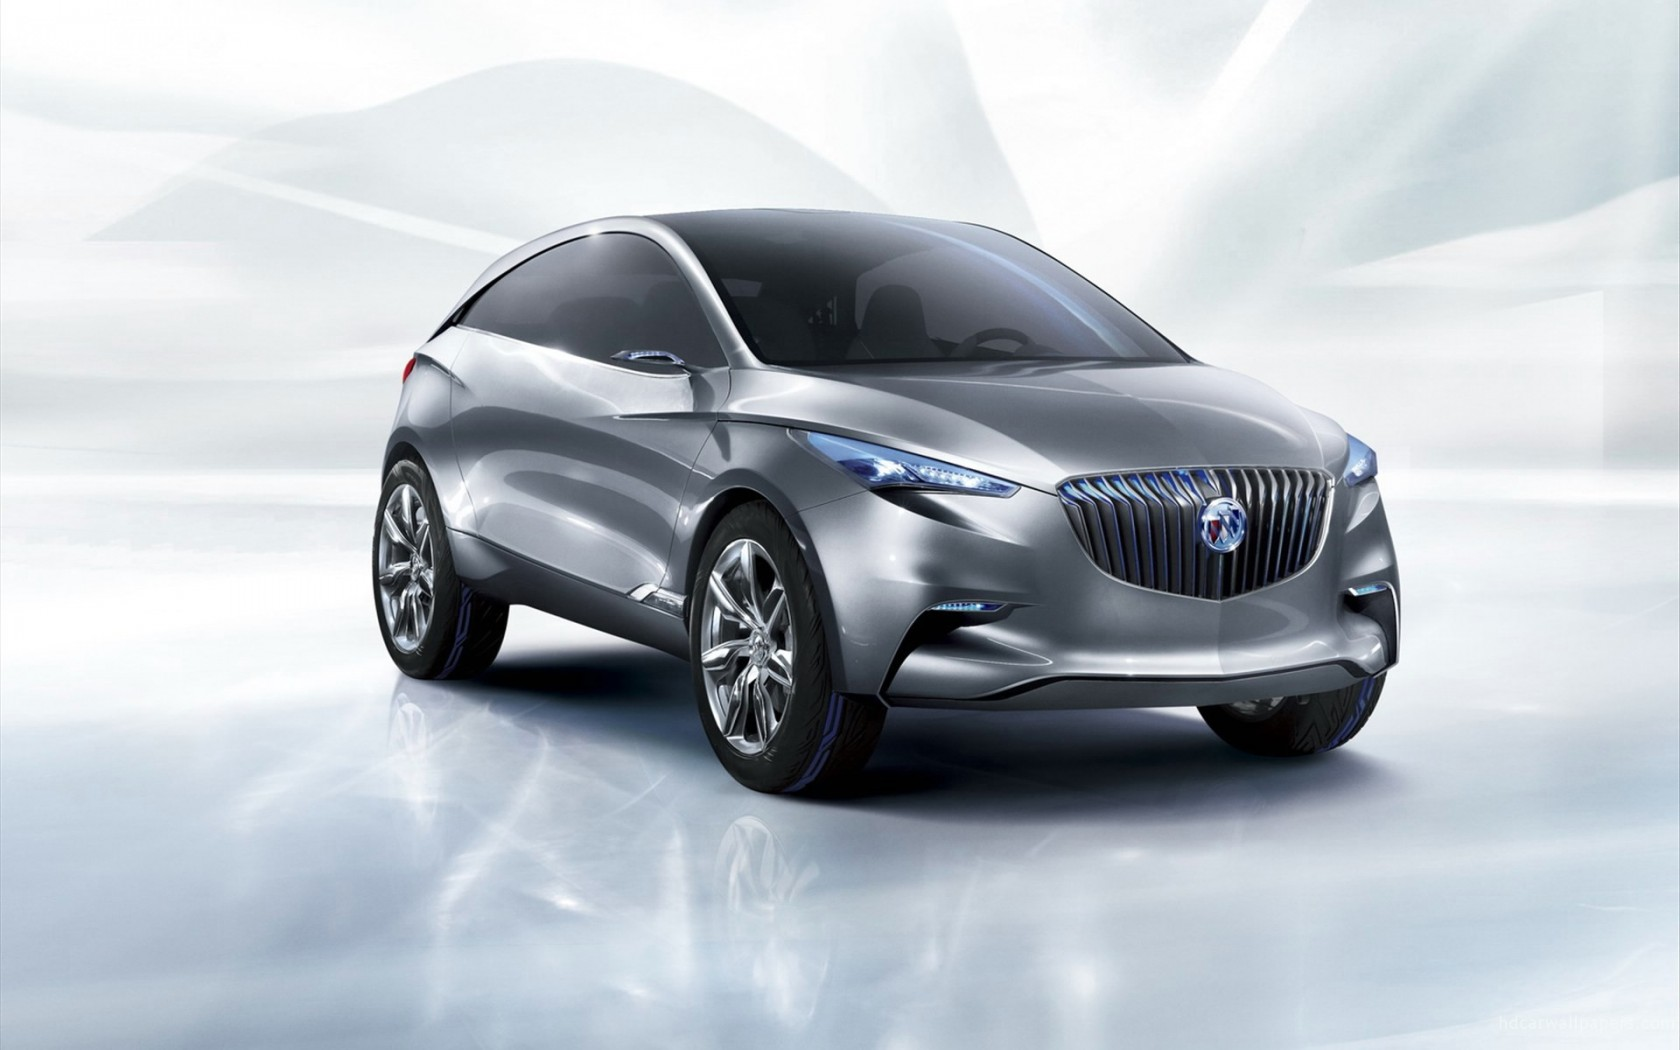 2011 Buick Envision Concept Wallpaper | HD Car Wallpapers ...